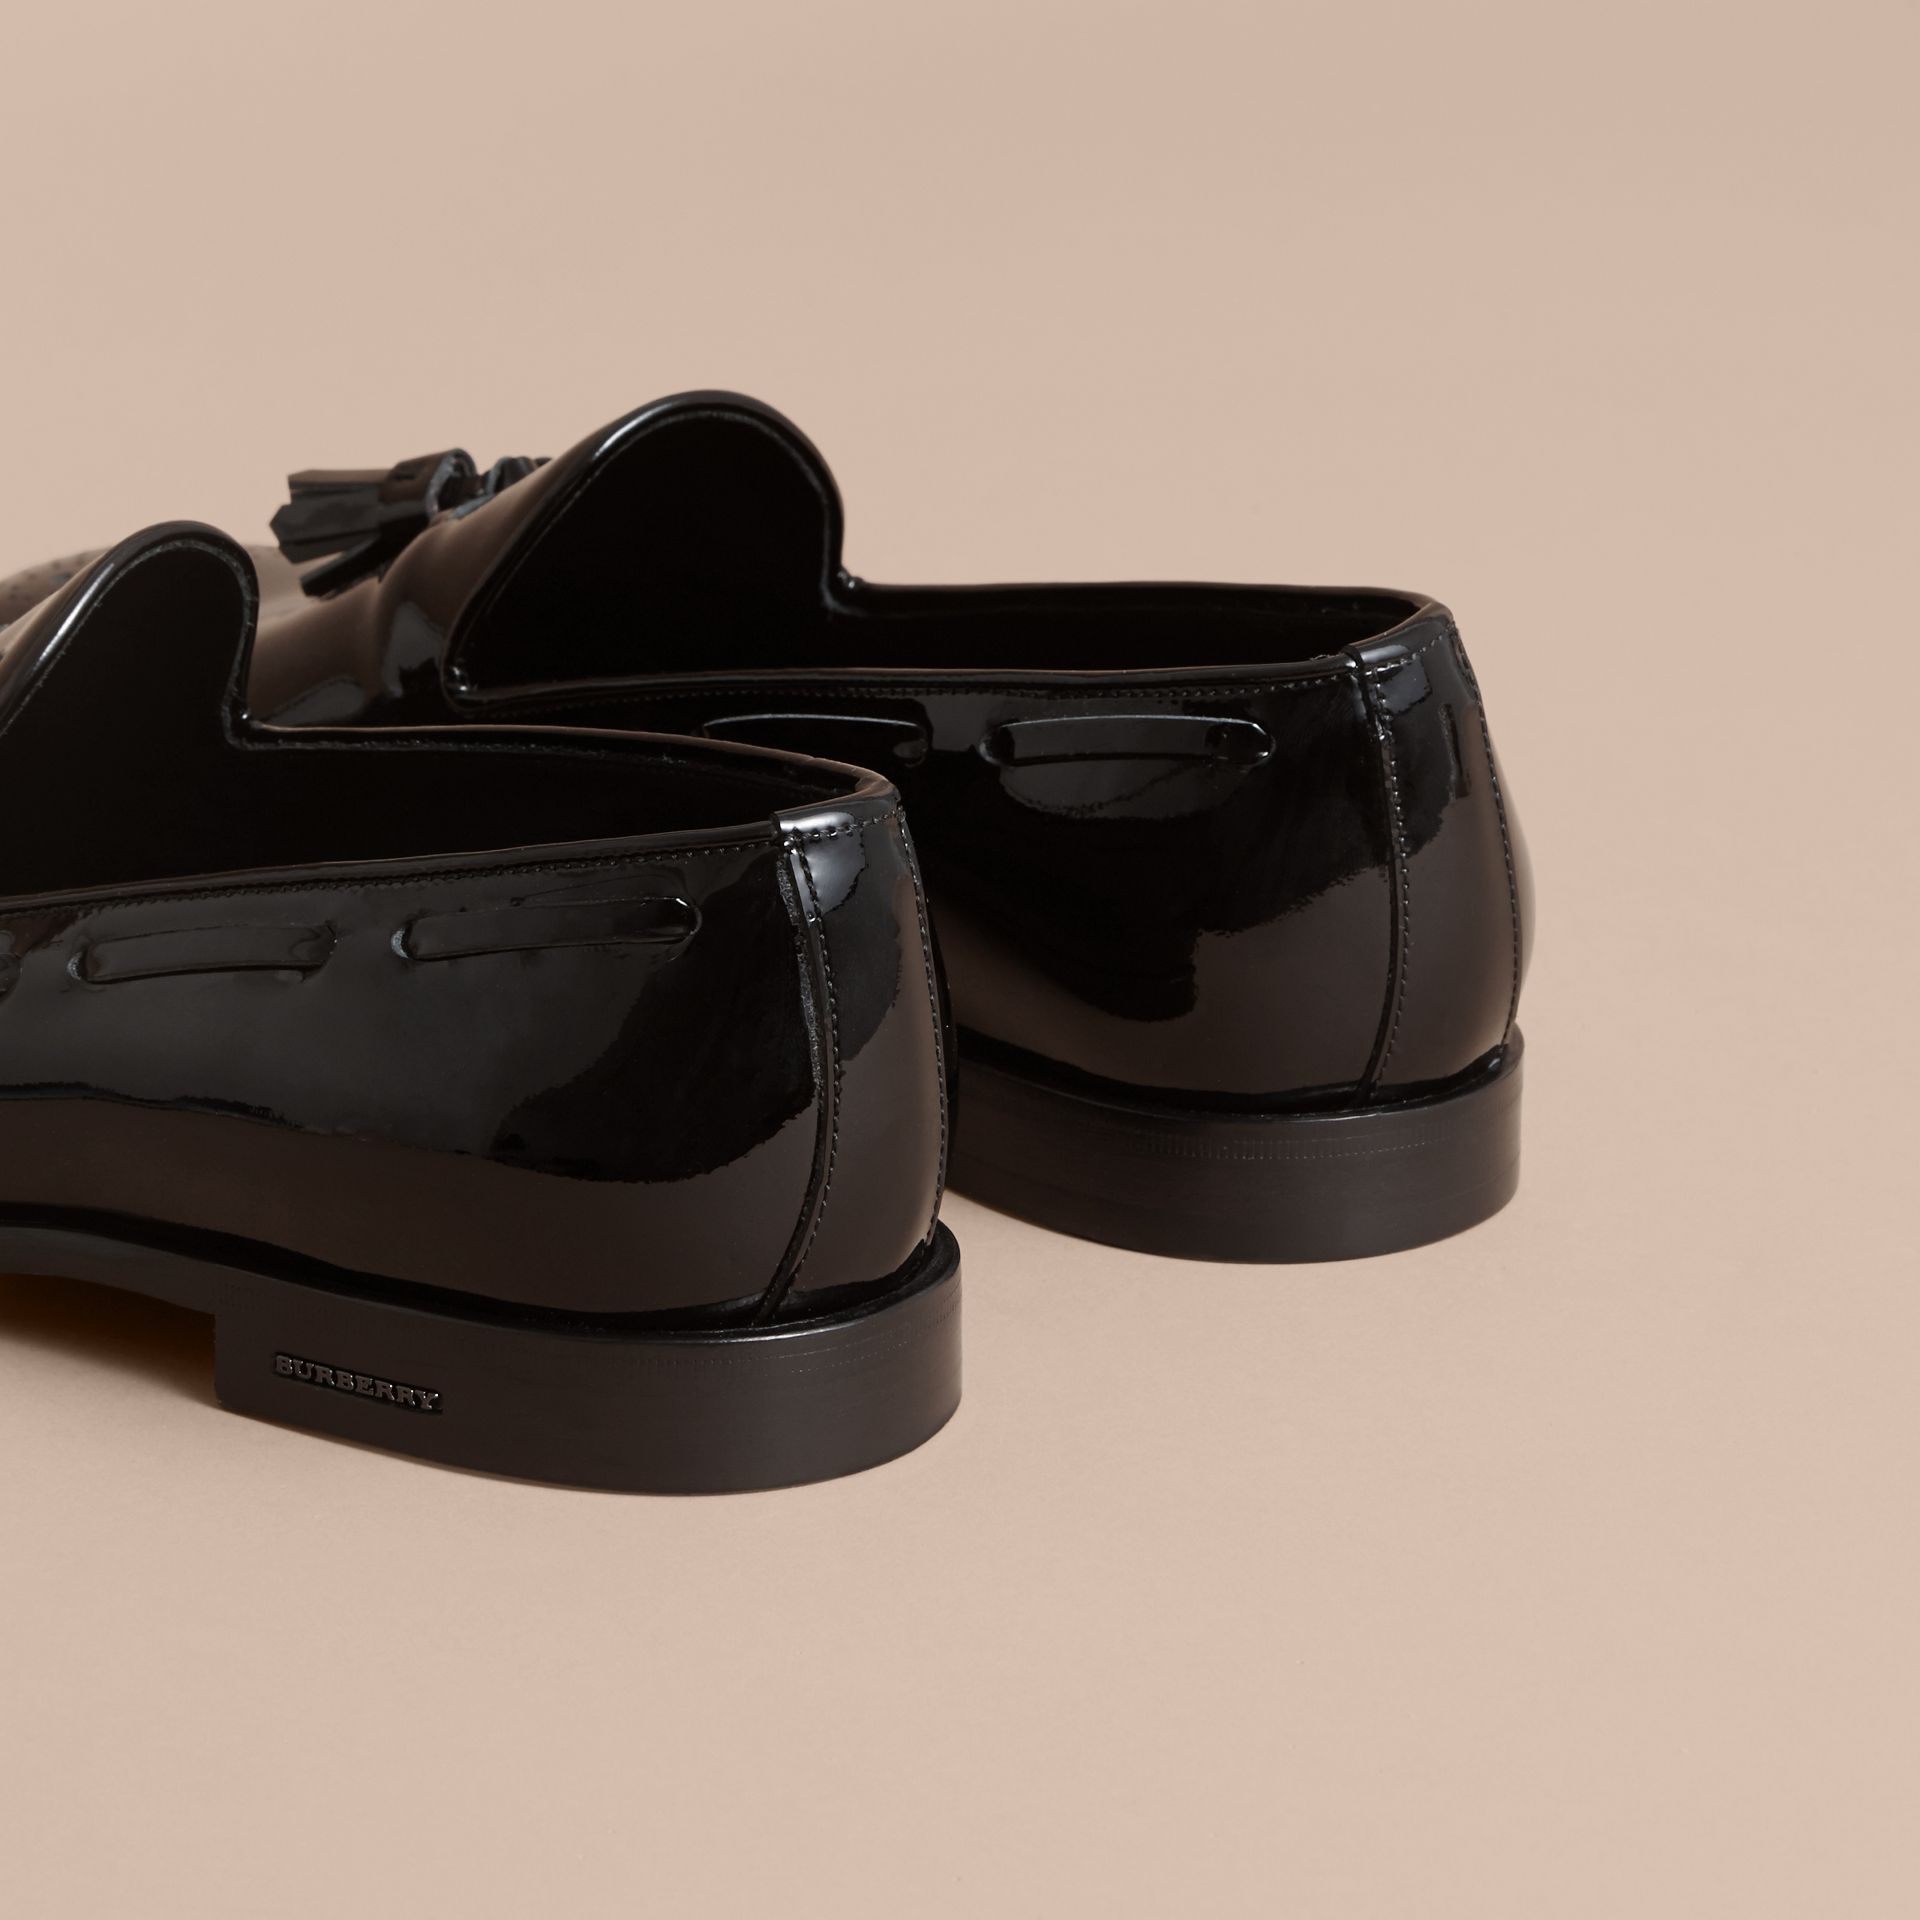 Tasselled Patent Leather Loafers in Black - Men | Burberry - gallery image 3